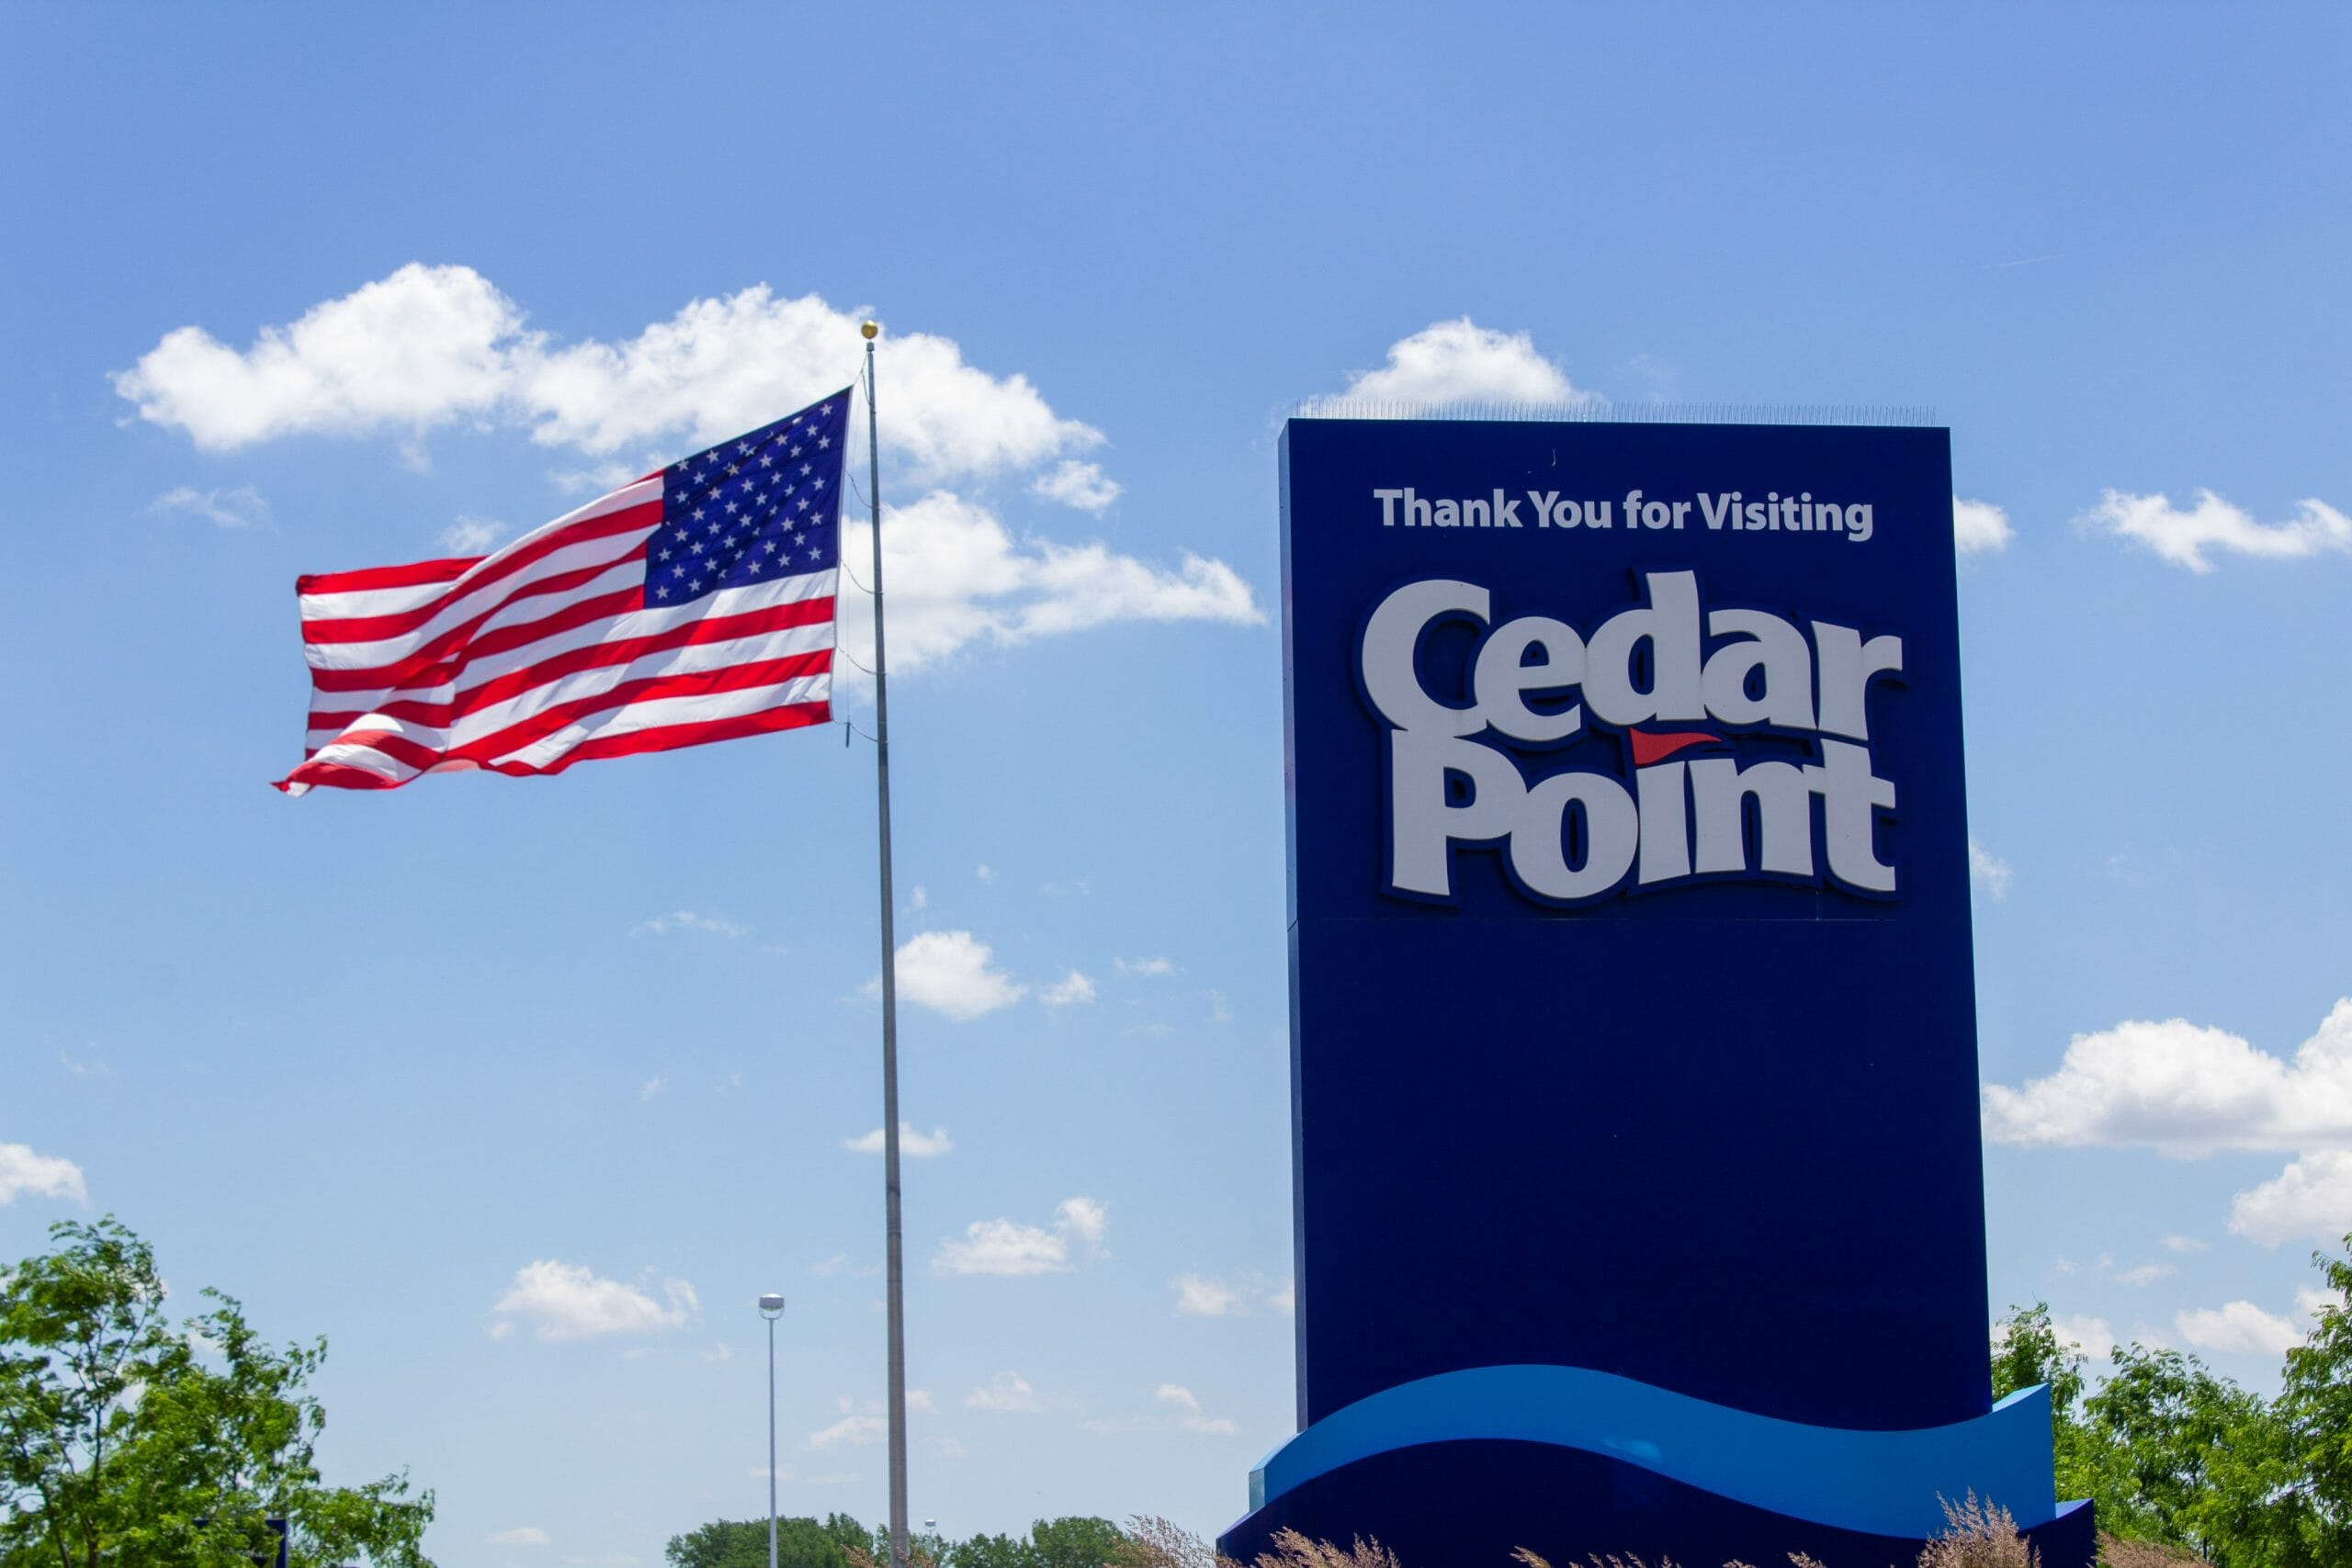 Cedar Point Requiring Reservations When Park Opens in May